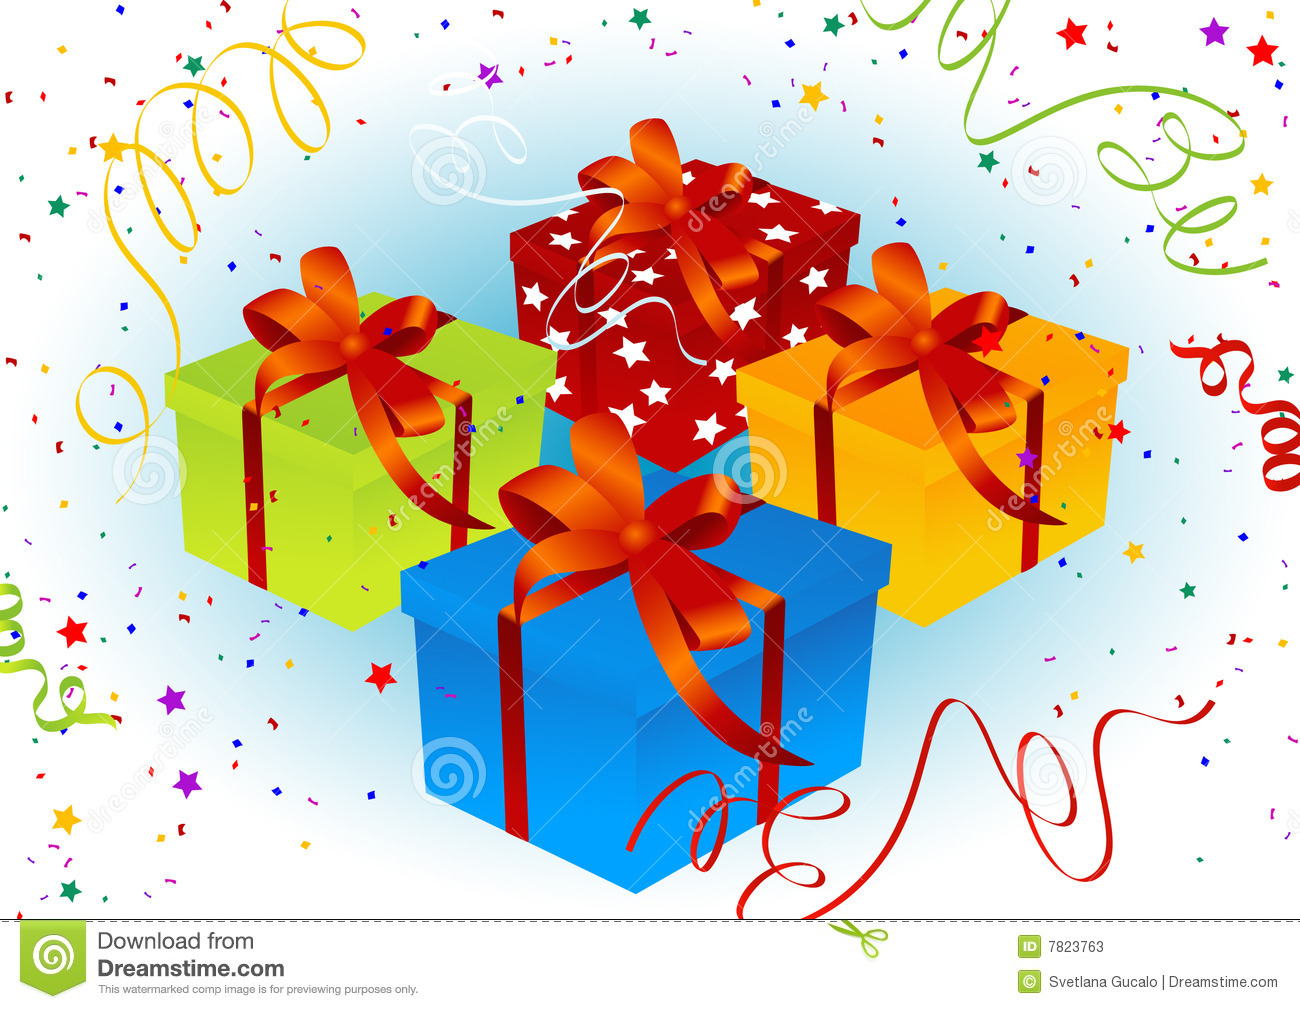 Birthday present background, vector illustration, AI file included.